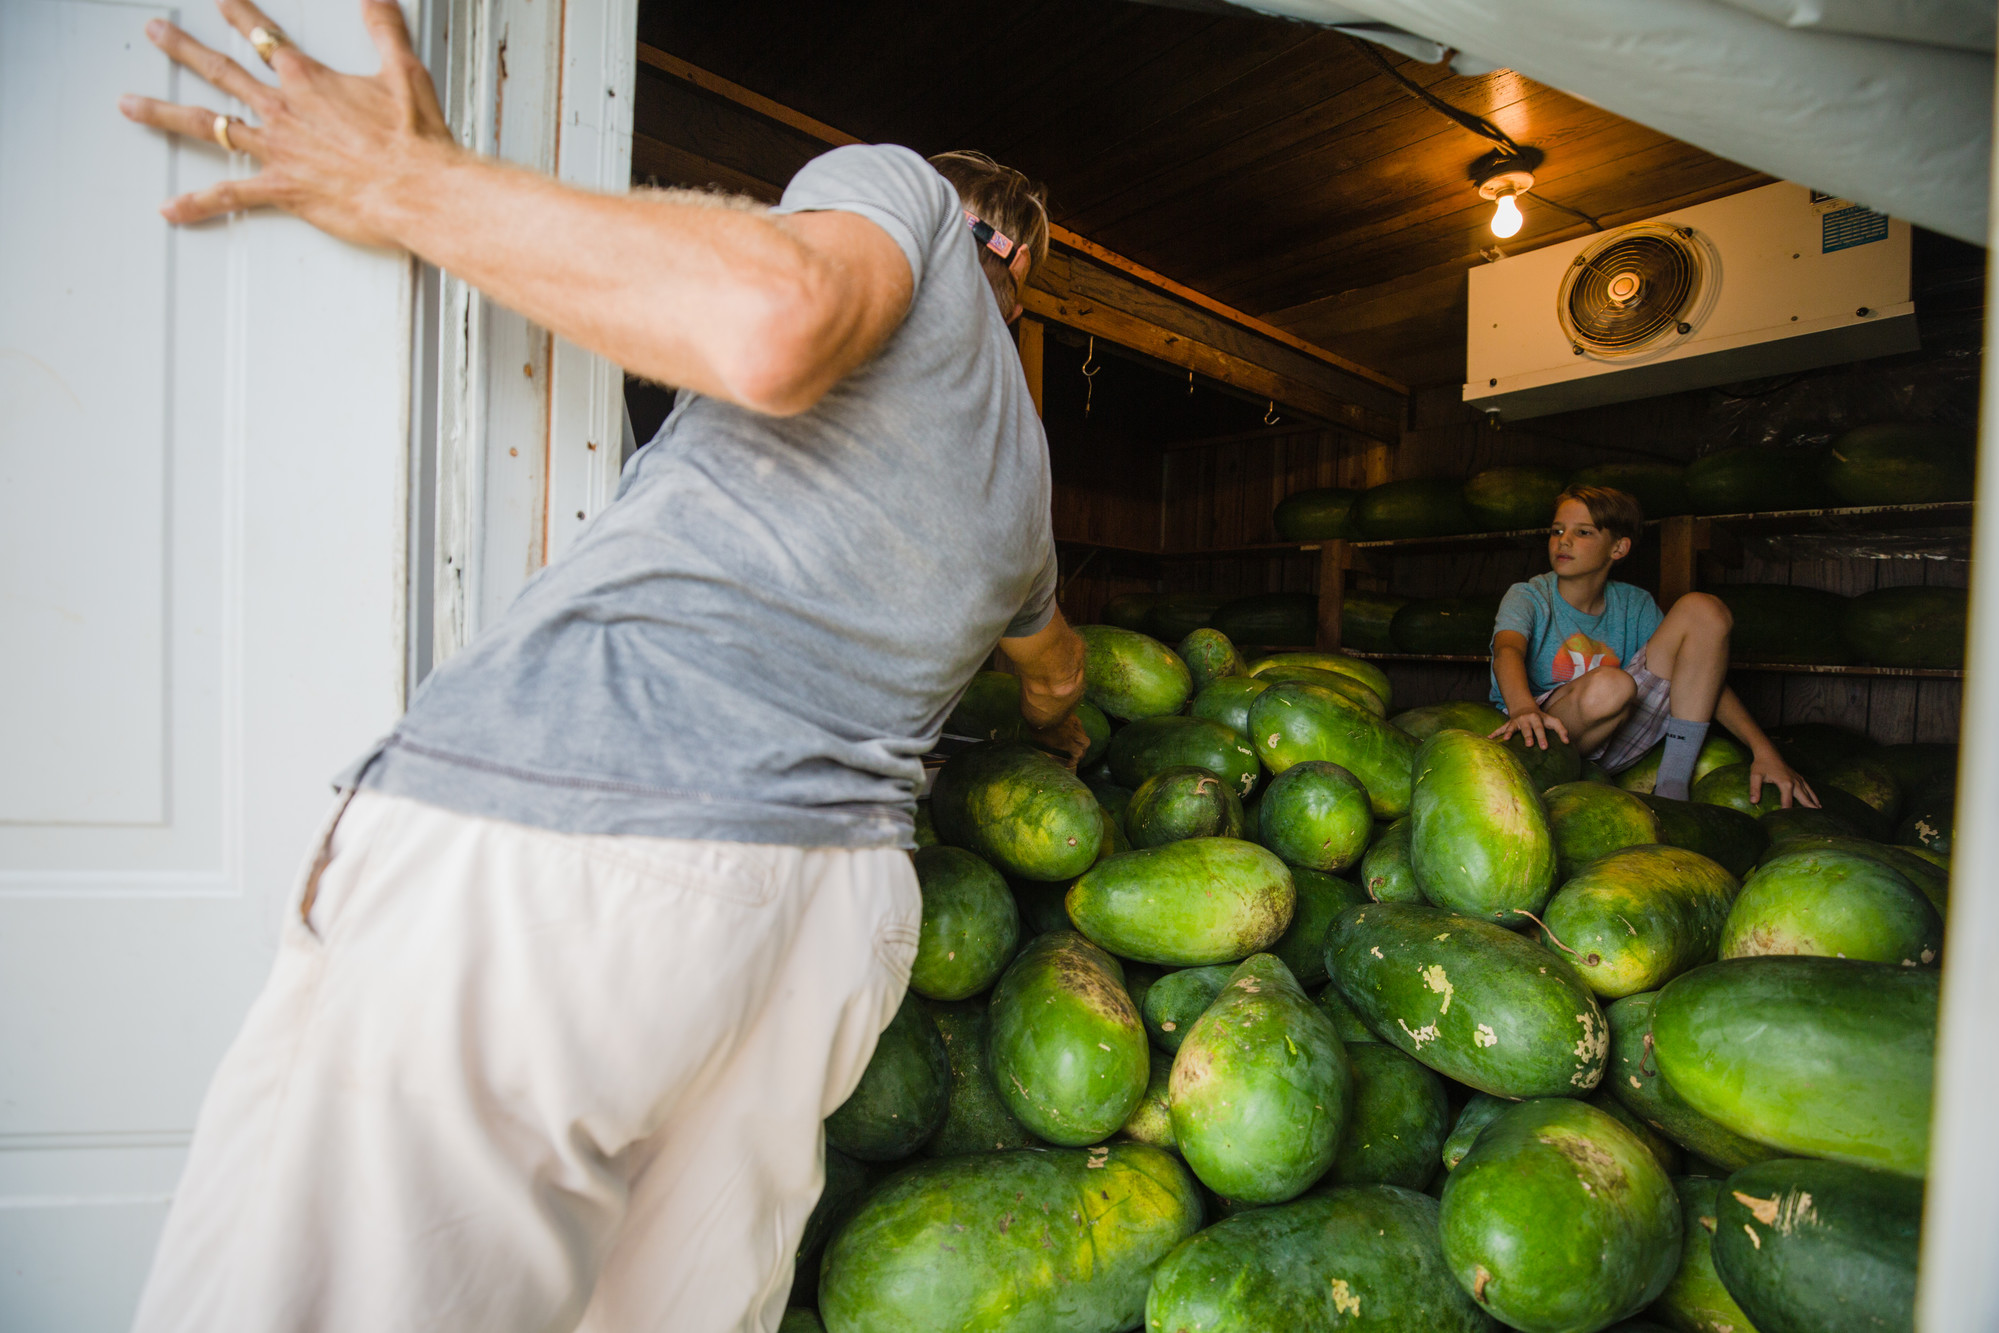 Nat Bradford looks into the about 900 watermelons he has stored away from Hurricane Florence on Friday, Sept. 14.